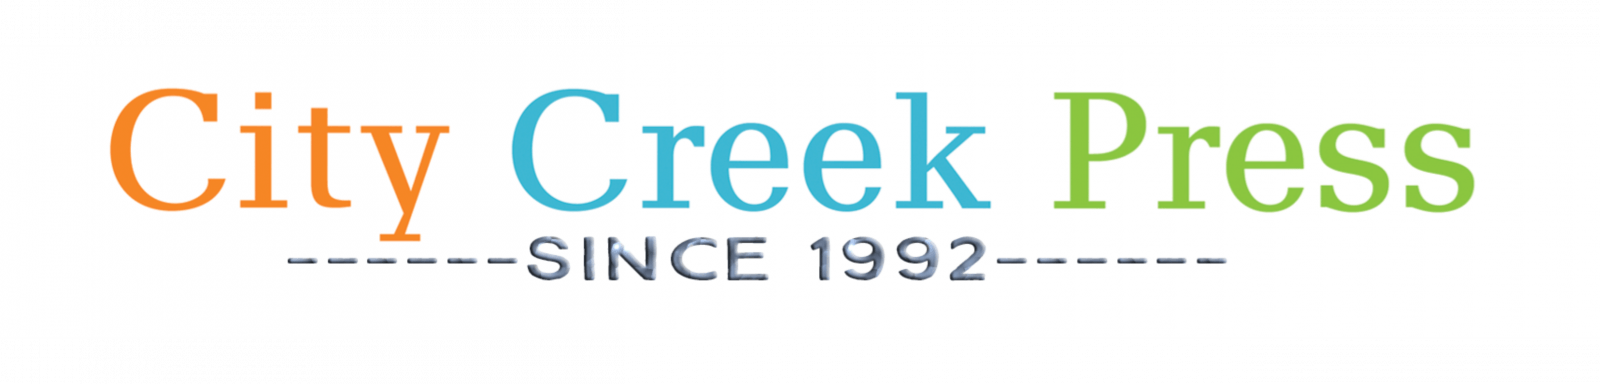 City Creek Press, Inc.